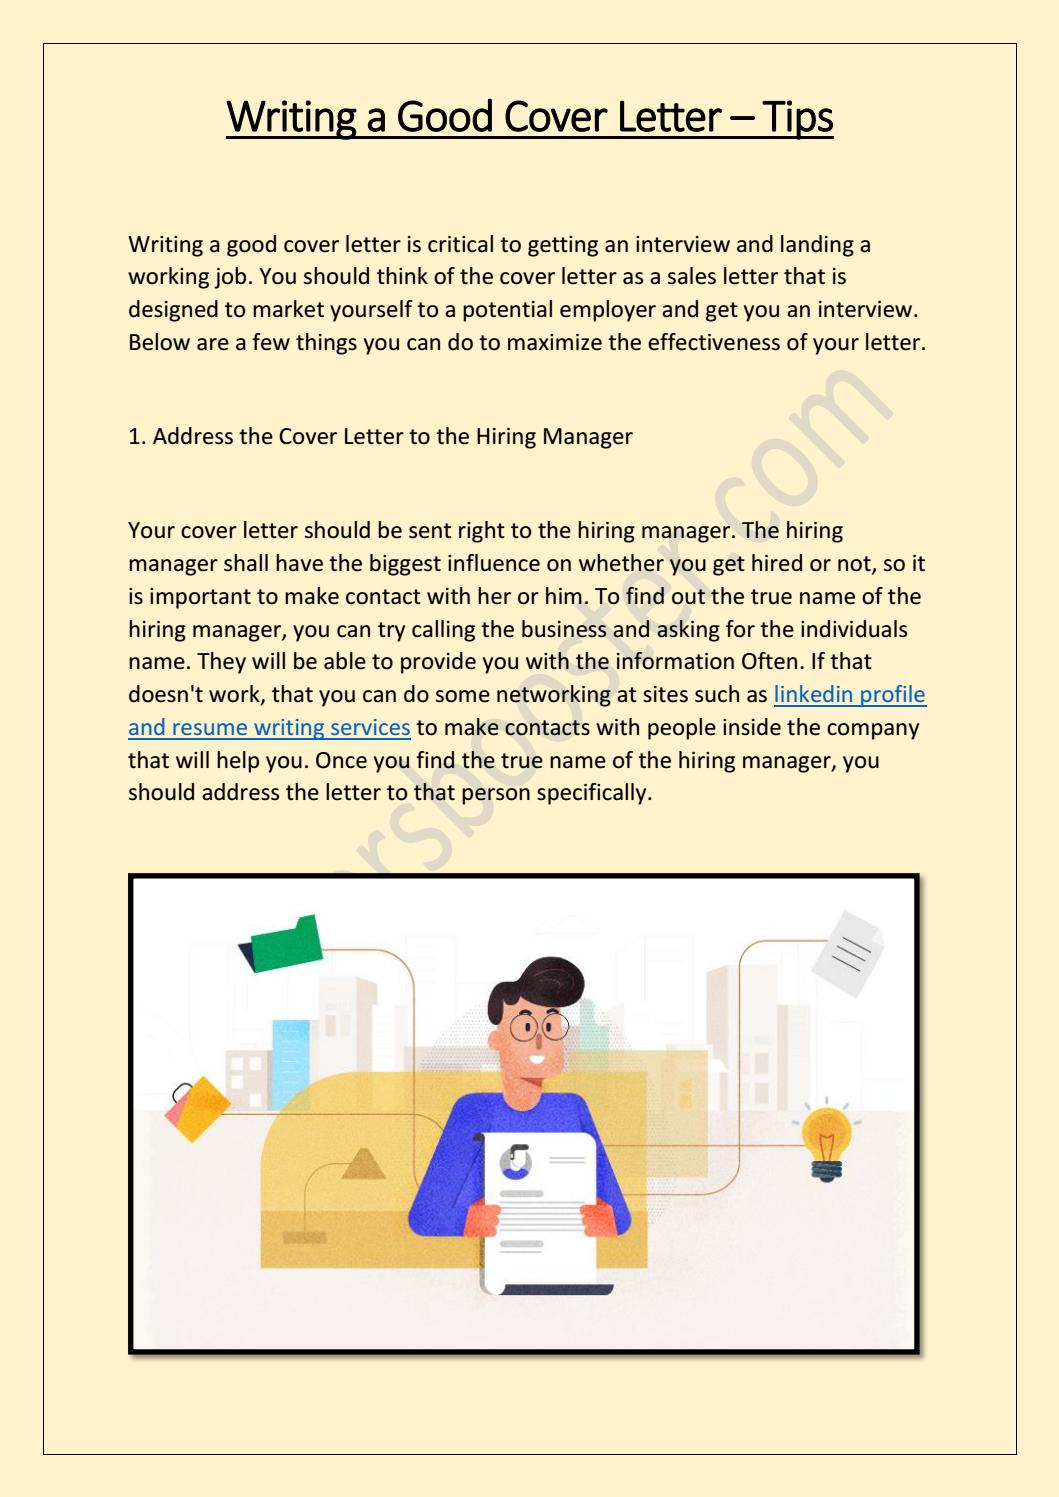 Sales Cover Letter Tips from image.isu.pub